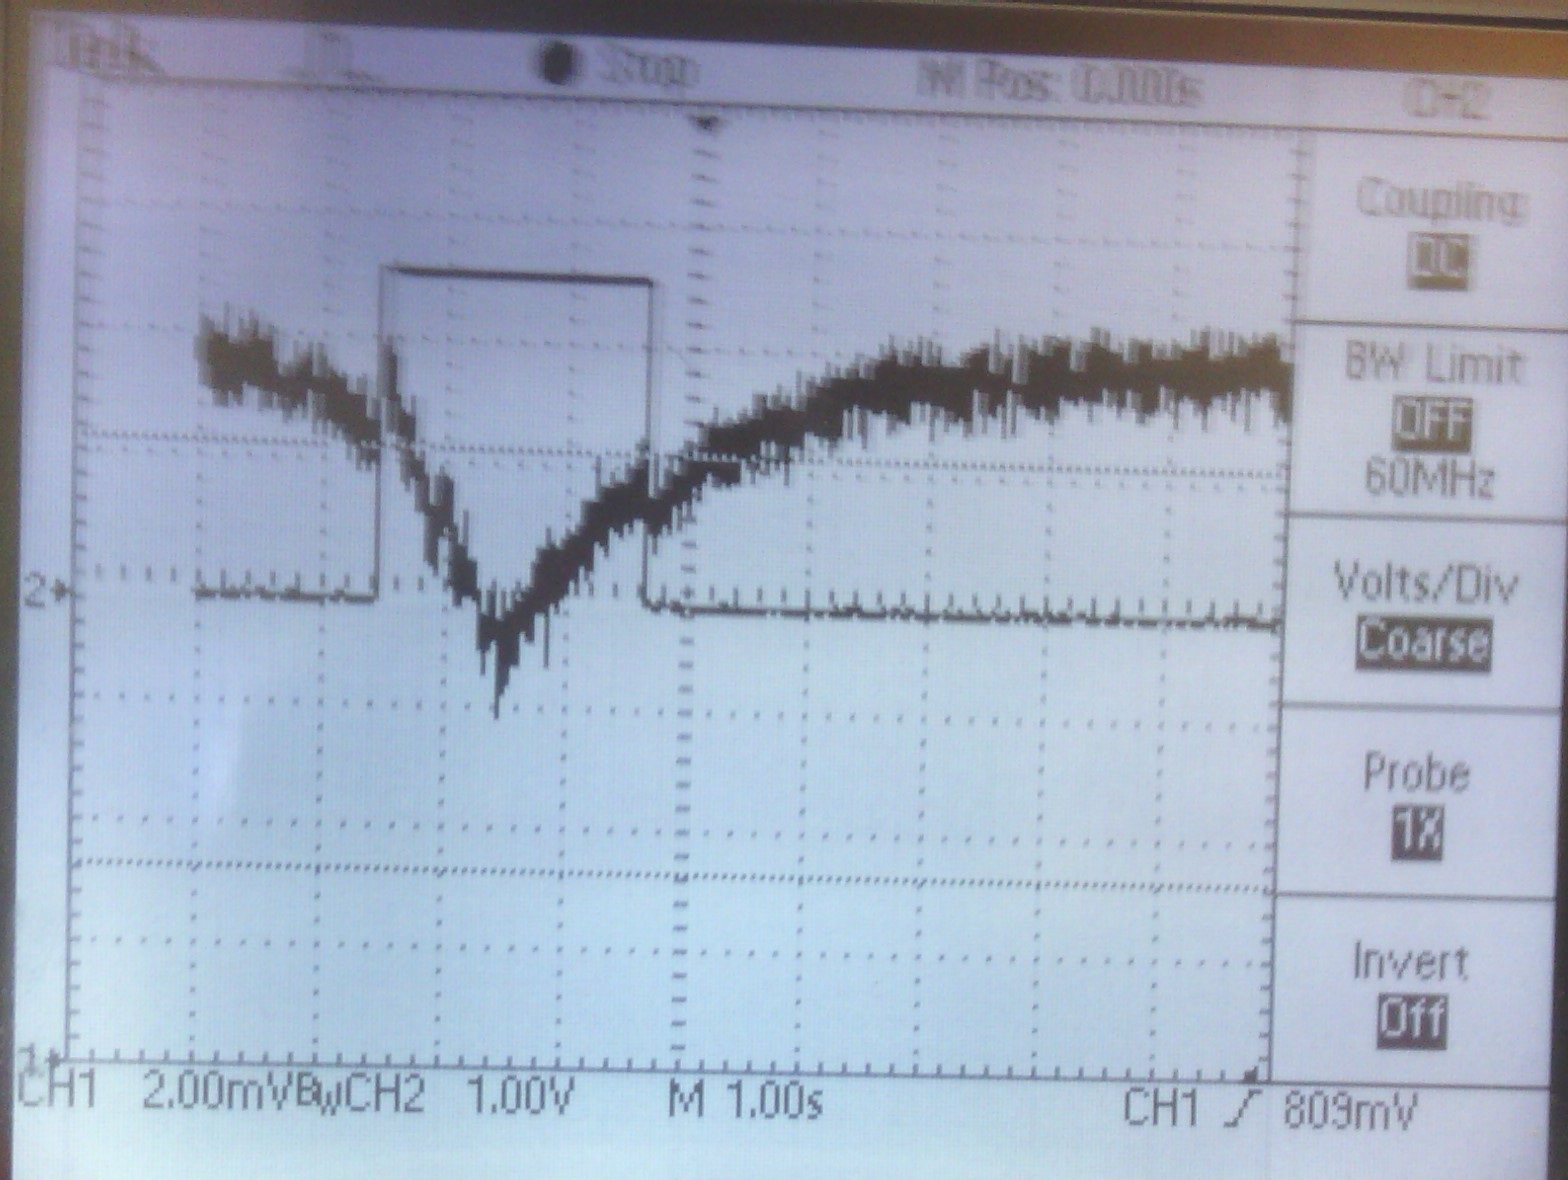 Univeristy Of Liverpool A Dual Infrared Sensor System For Fall Pir Circuit Diagram Using Lm324 Oscilloscope Output And Comparator Walking Past At Distance 1m